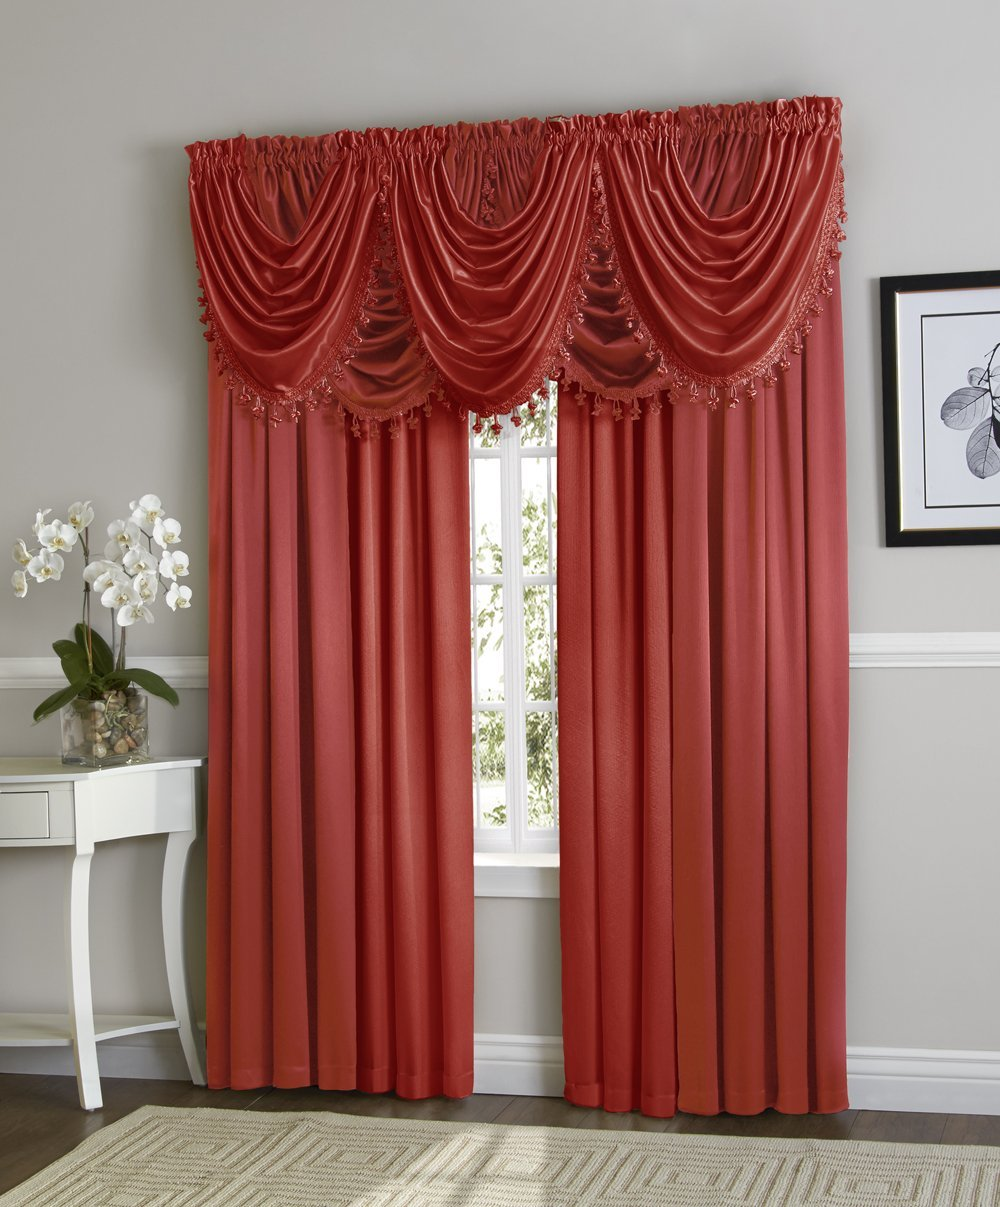 window solid navy pretty orange curtains valance breathtaking charm colored blue charming teal black v satisfying small captivating windows valances of yellow treatments kitchen swag size and brown scarf turquoise glamorous bathroom drapes s full